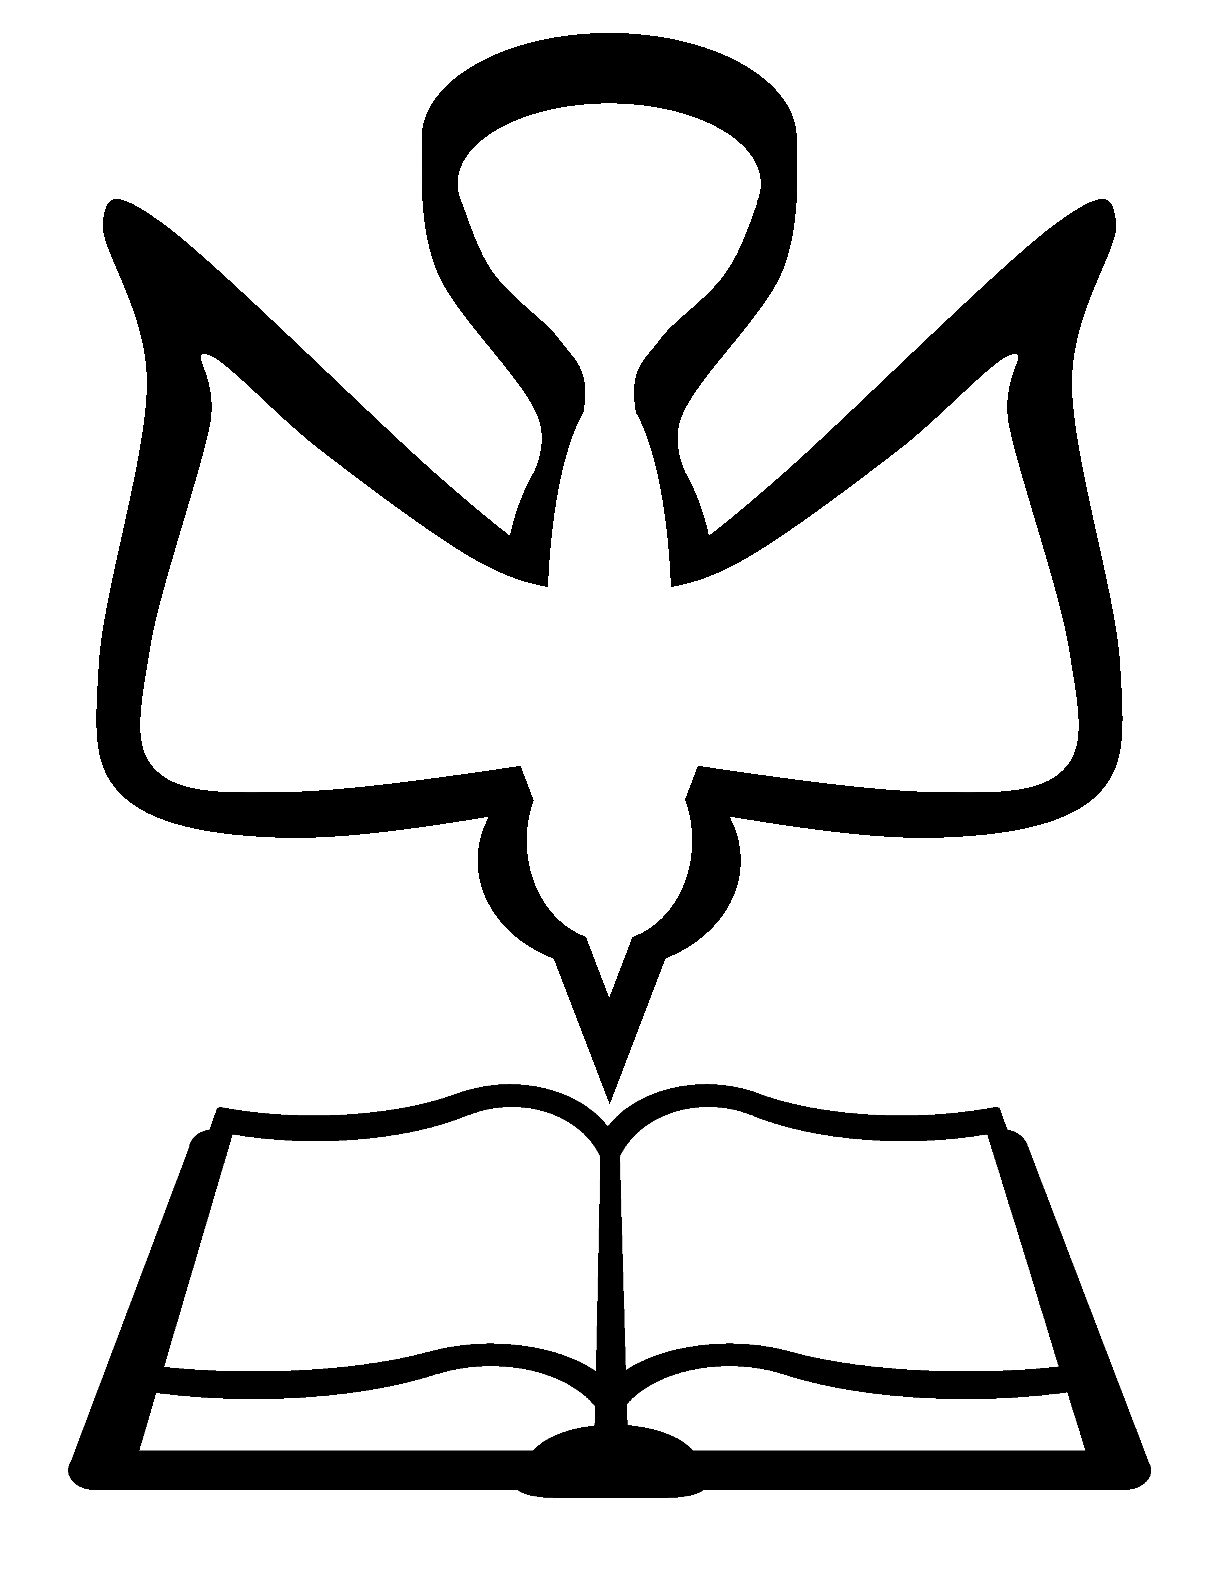 Free Bible Dove Cliparts, Download Free Clip Art, Free